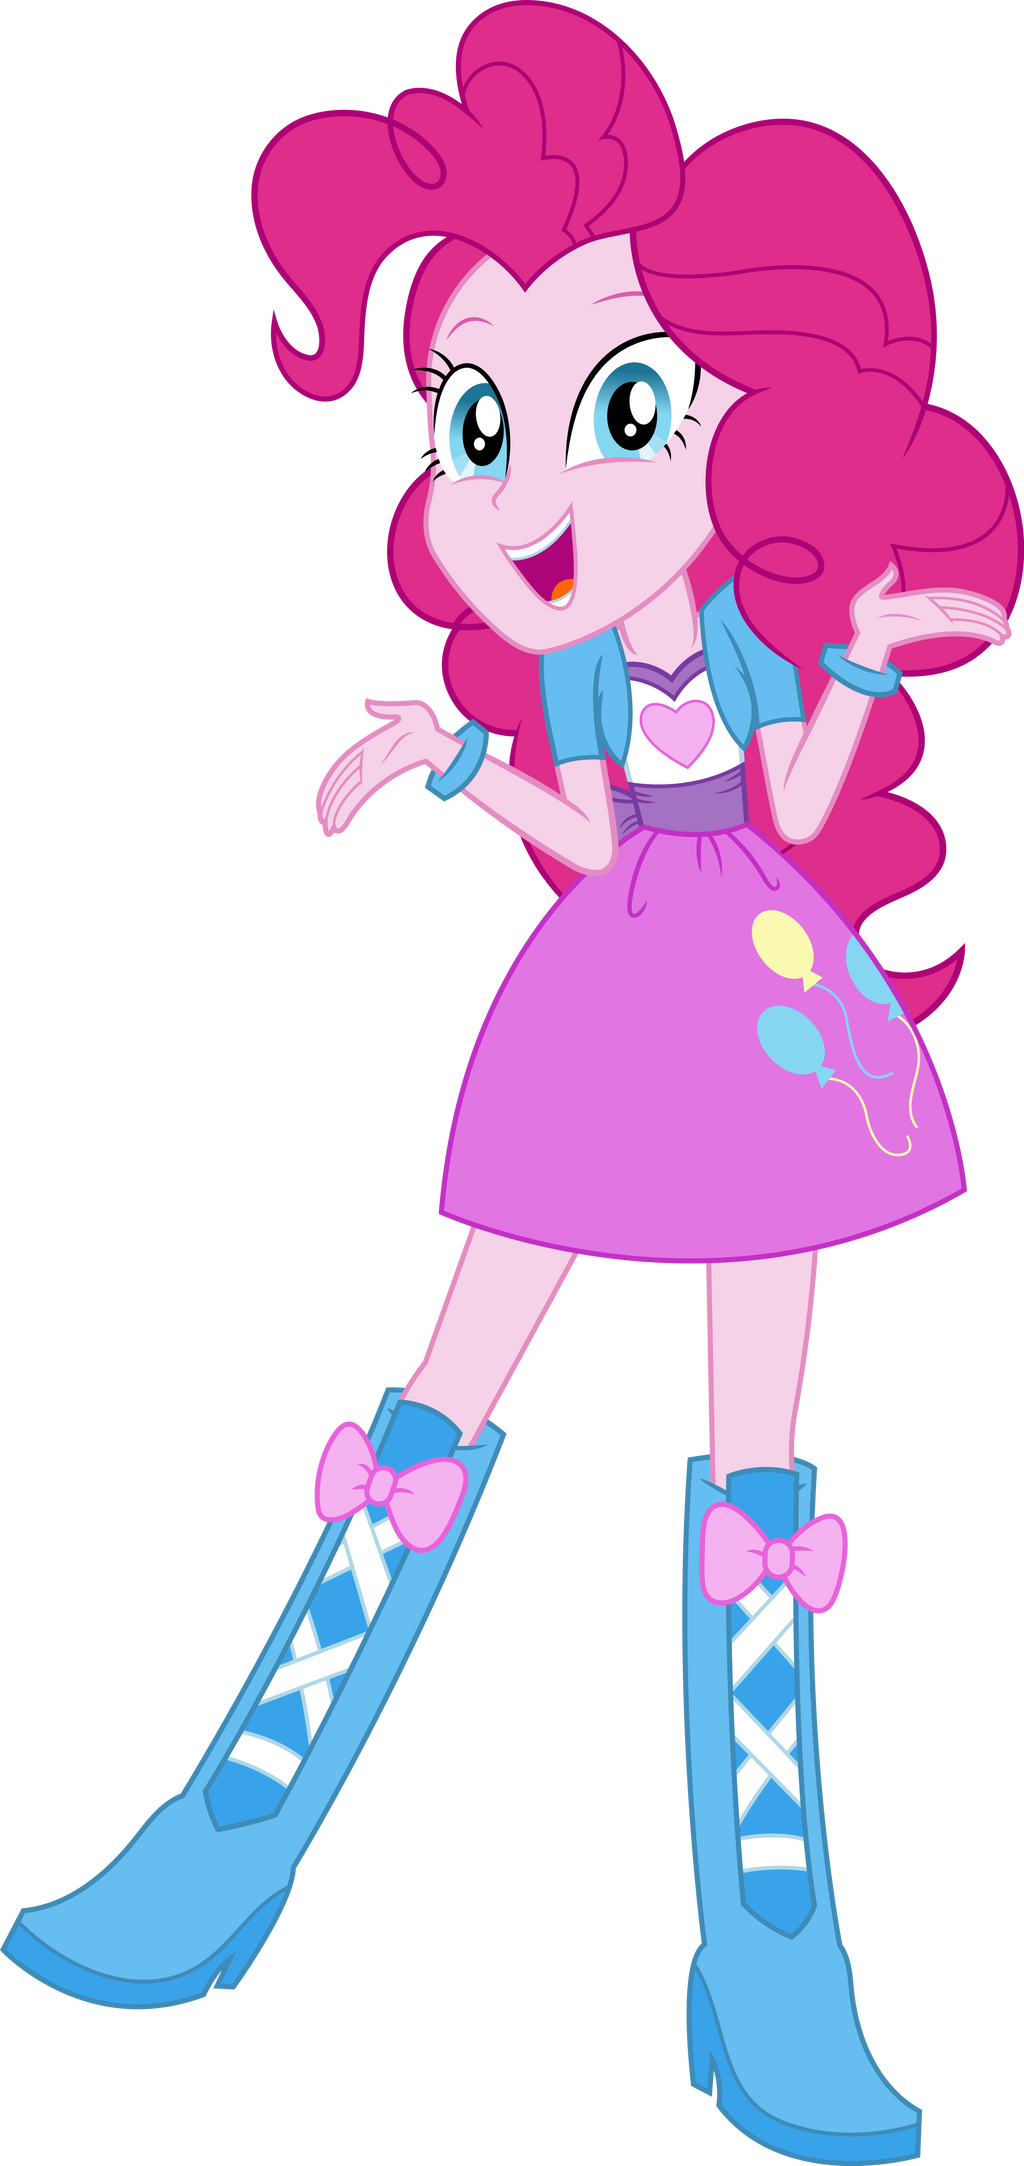 Download Pinkie Pie Clipart HQ PNG Image | FreePNGImg